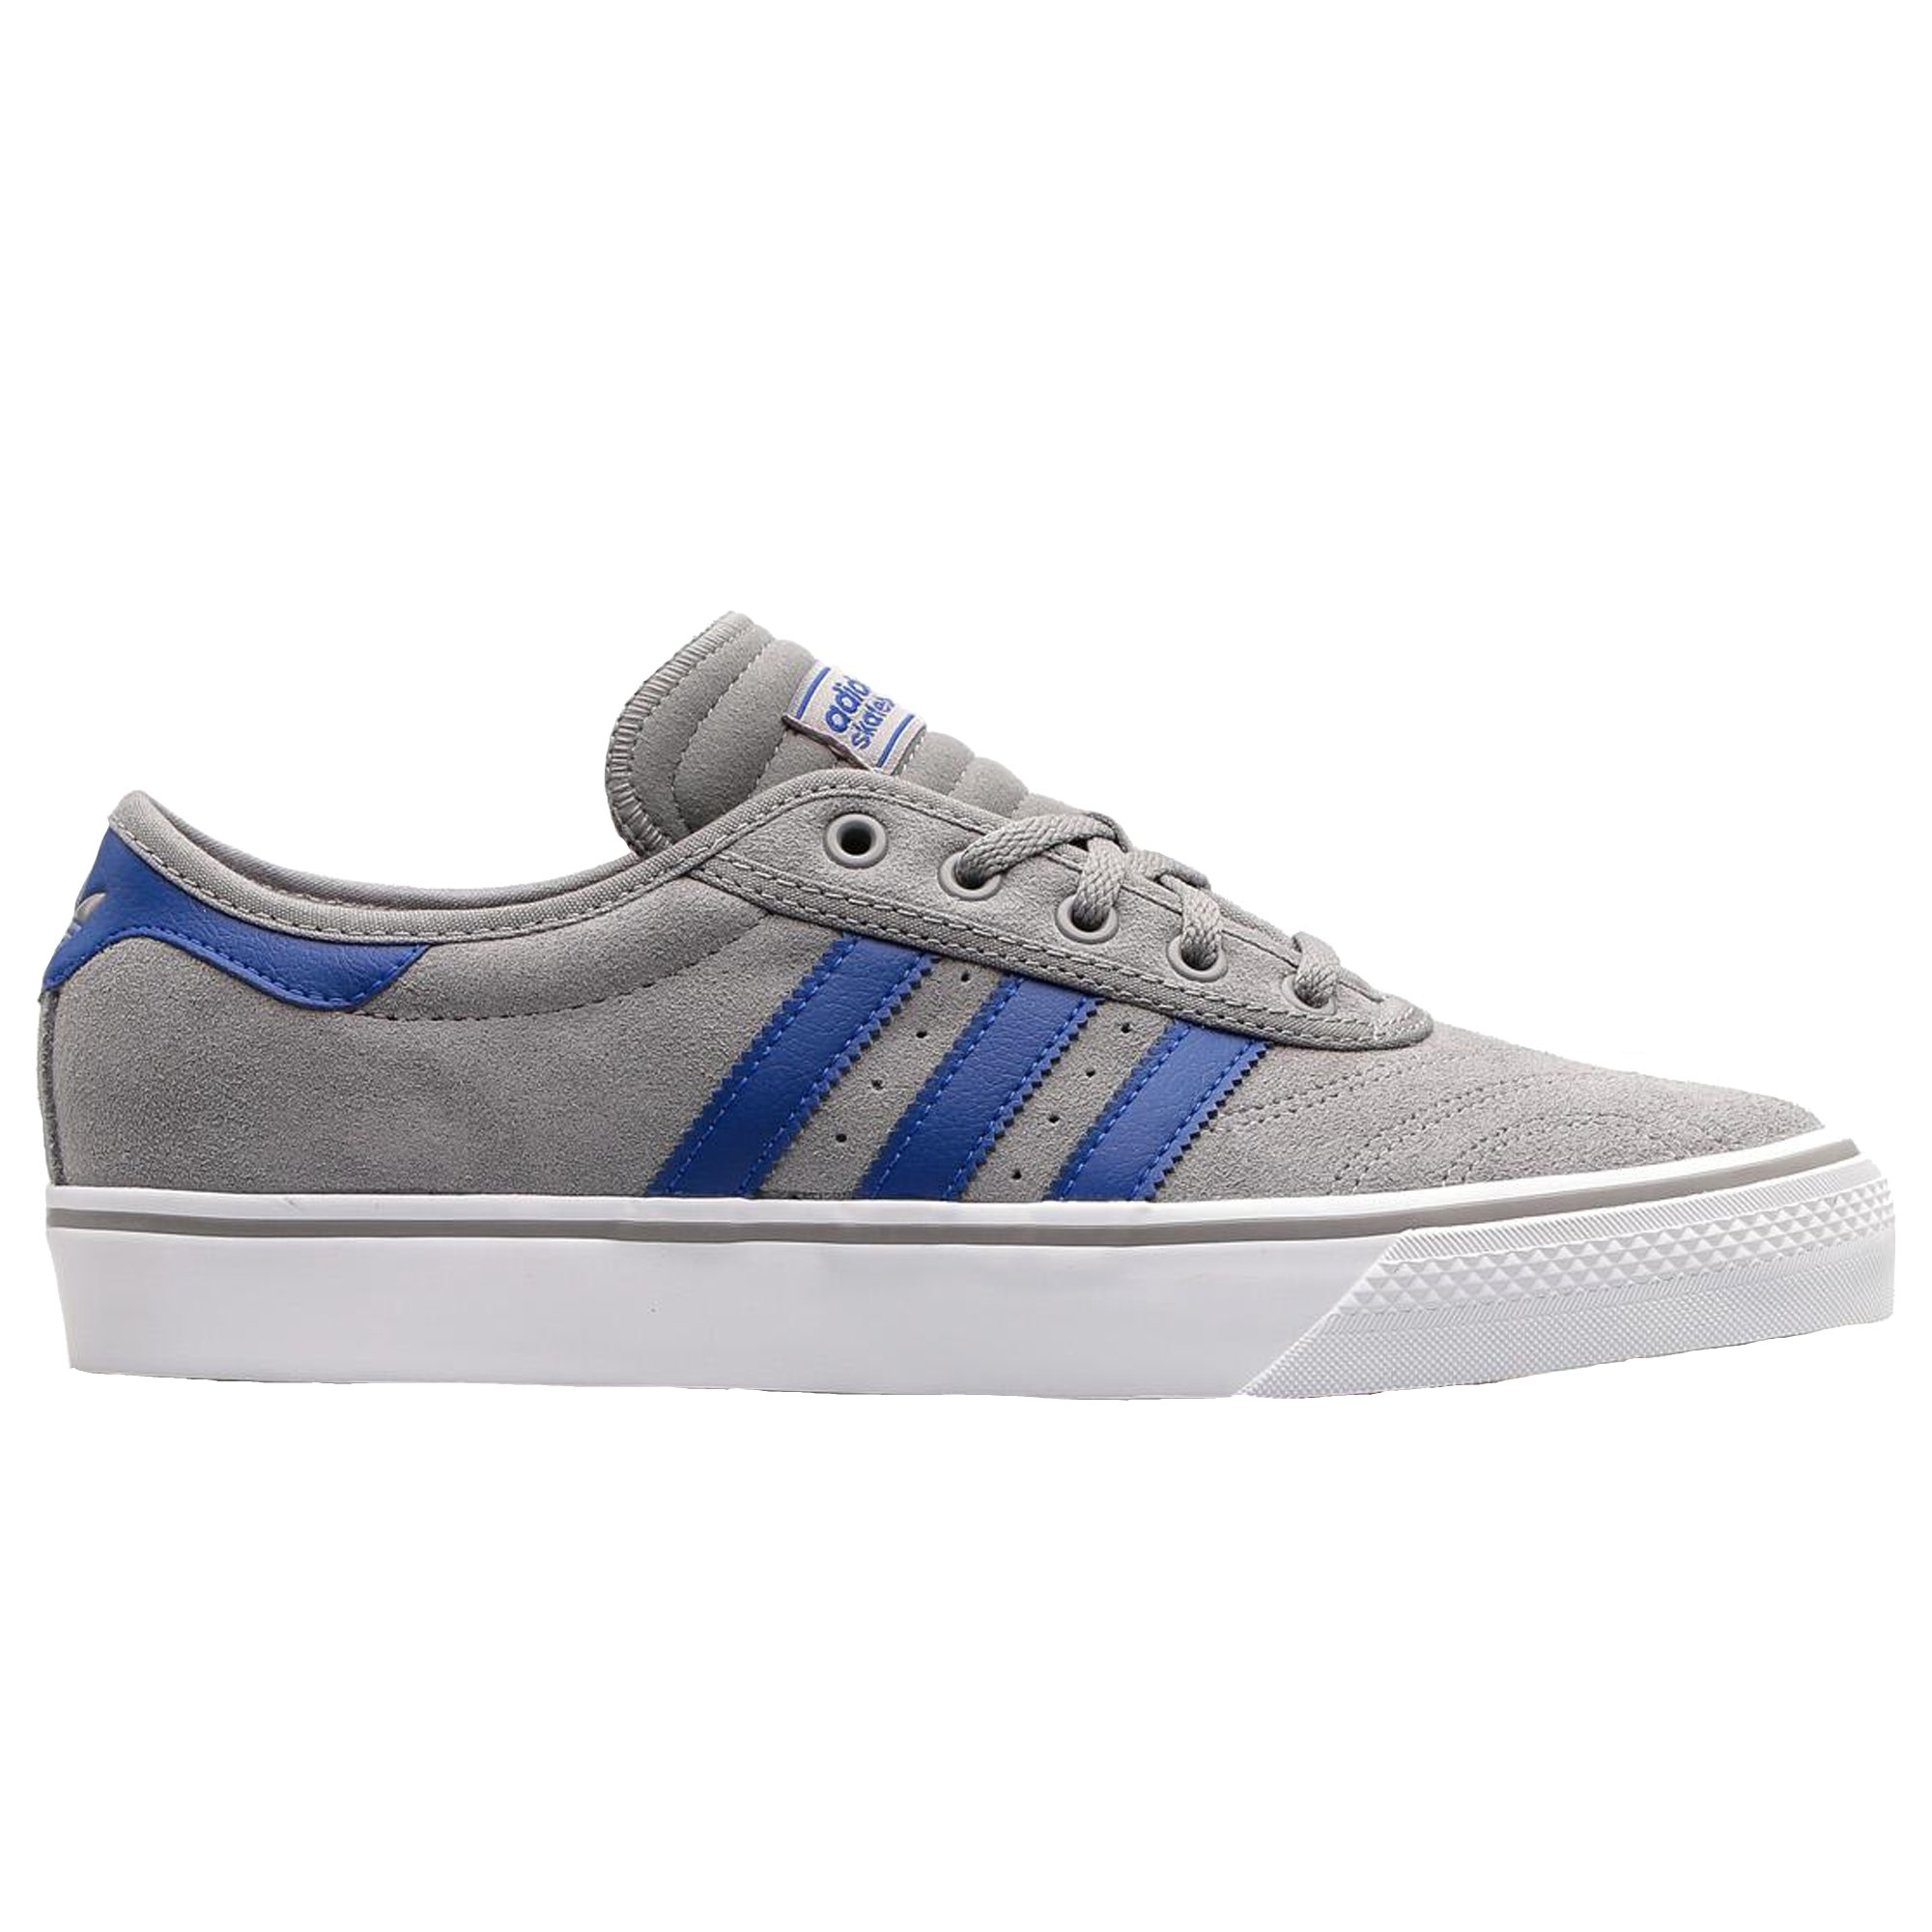 27aad53b01b93 Galleon - Adidas Skateboarding Men s Adi-Ease Premiere Grey 3 Collegiate  Royal Footwear White 10 D US